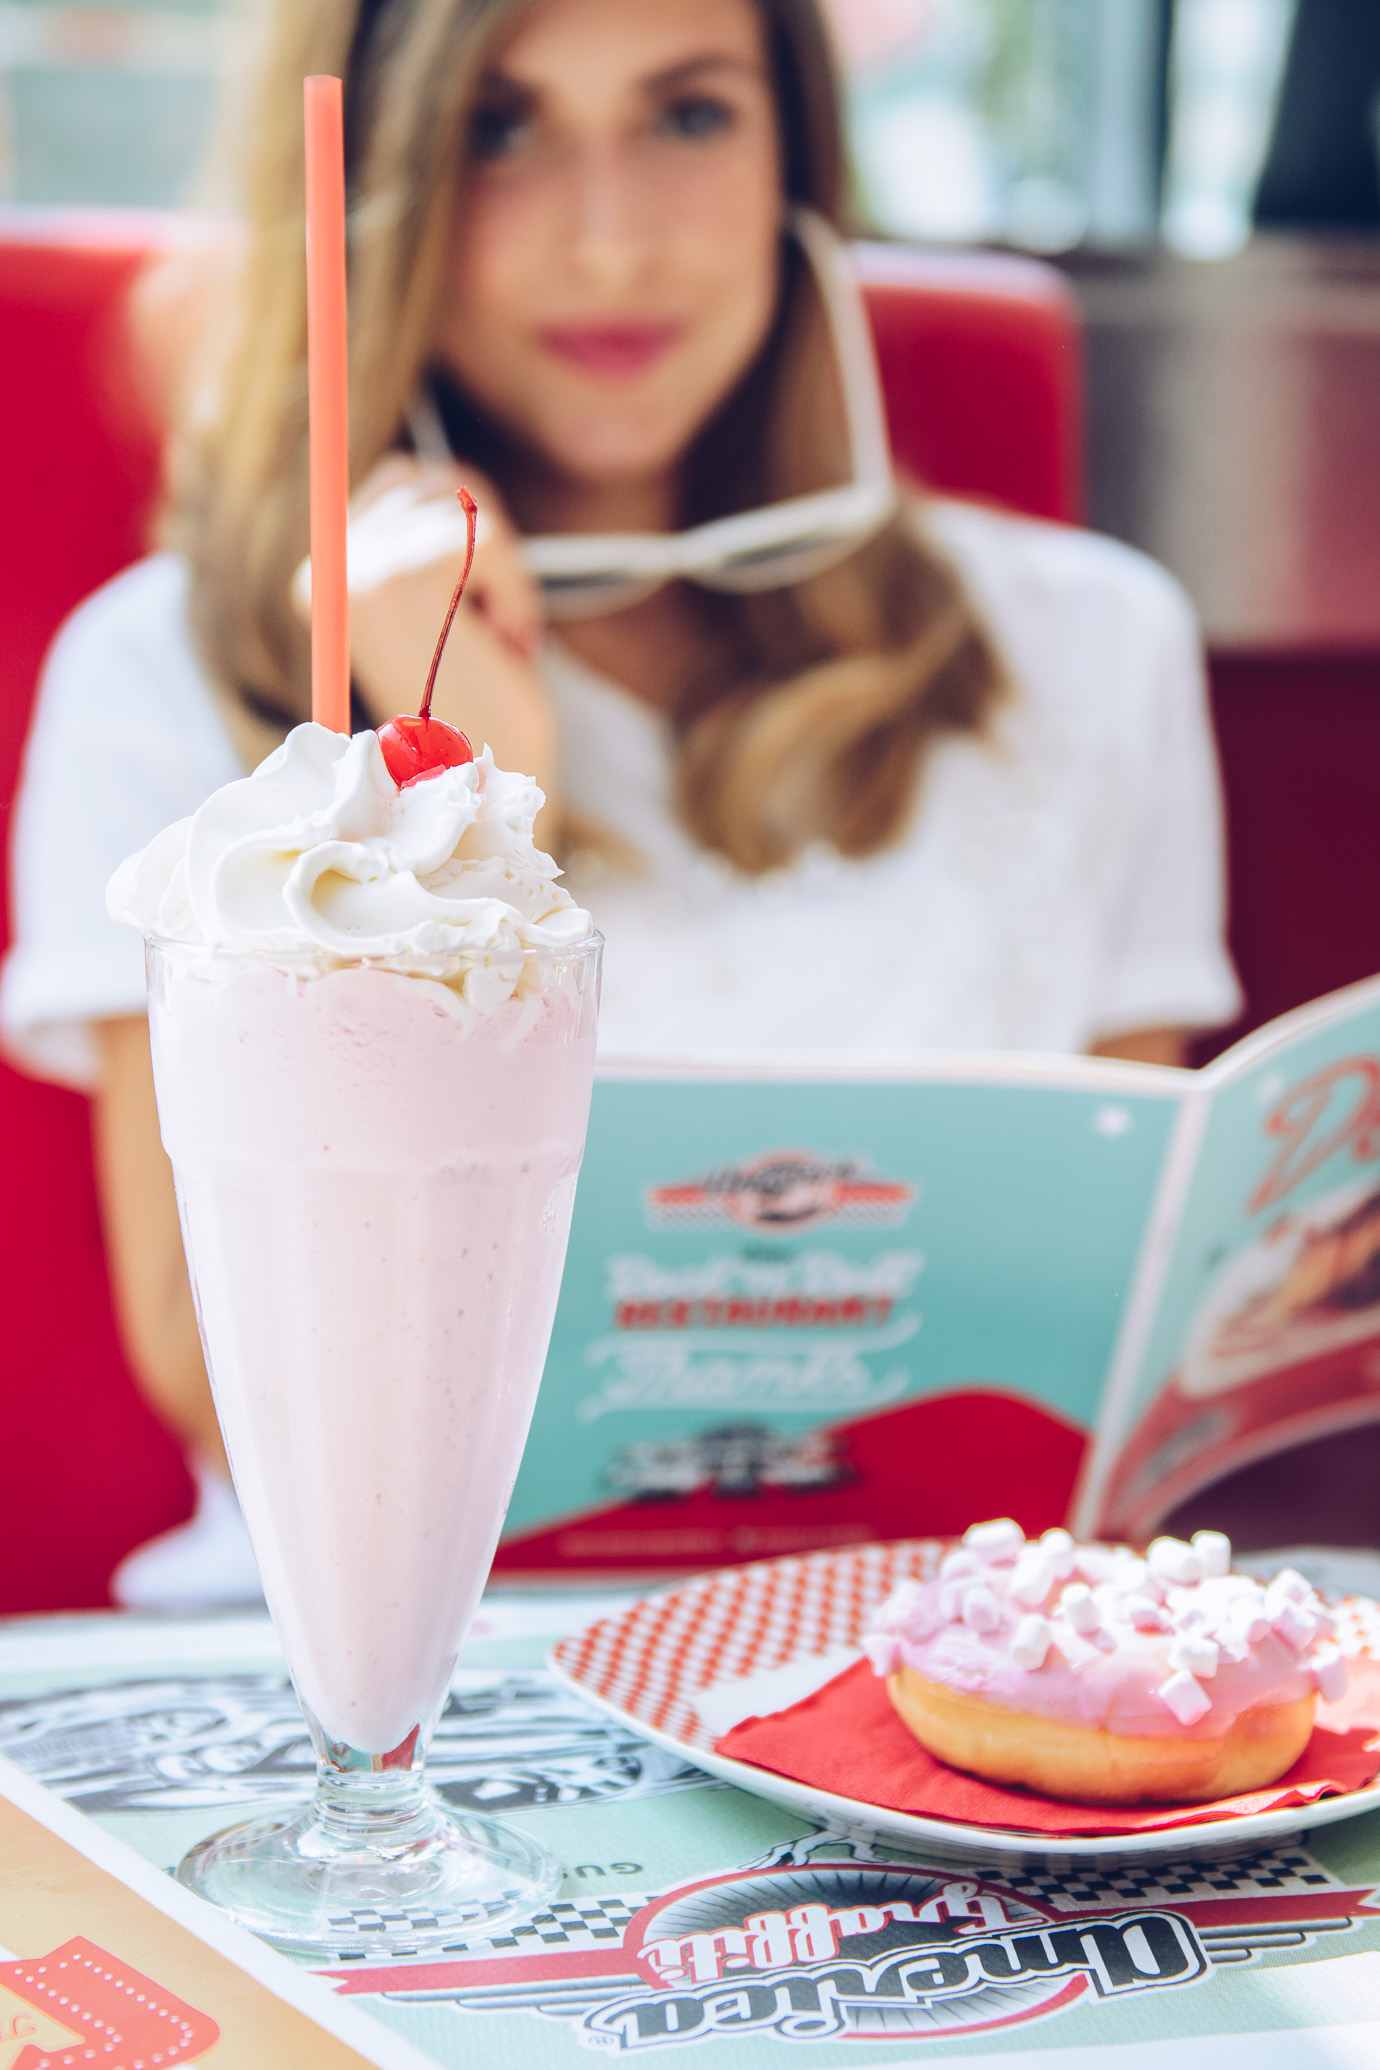 Milk Shake retro look